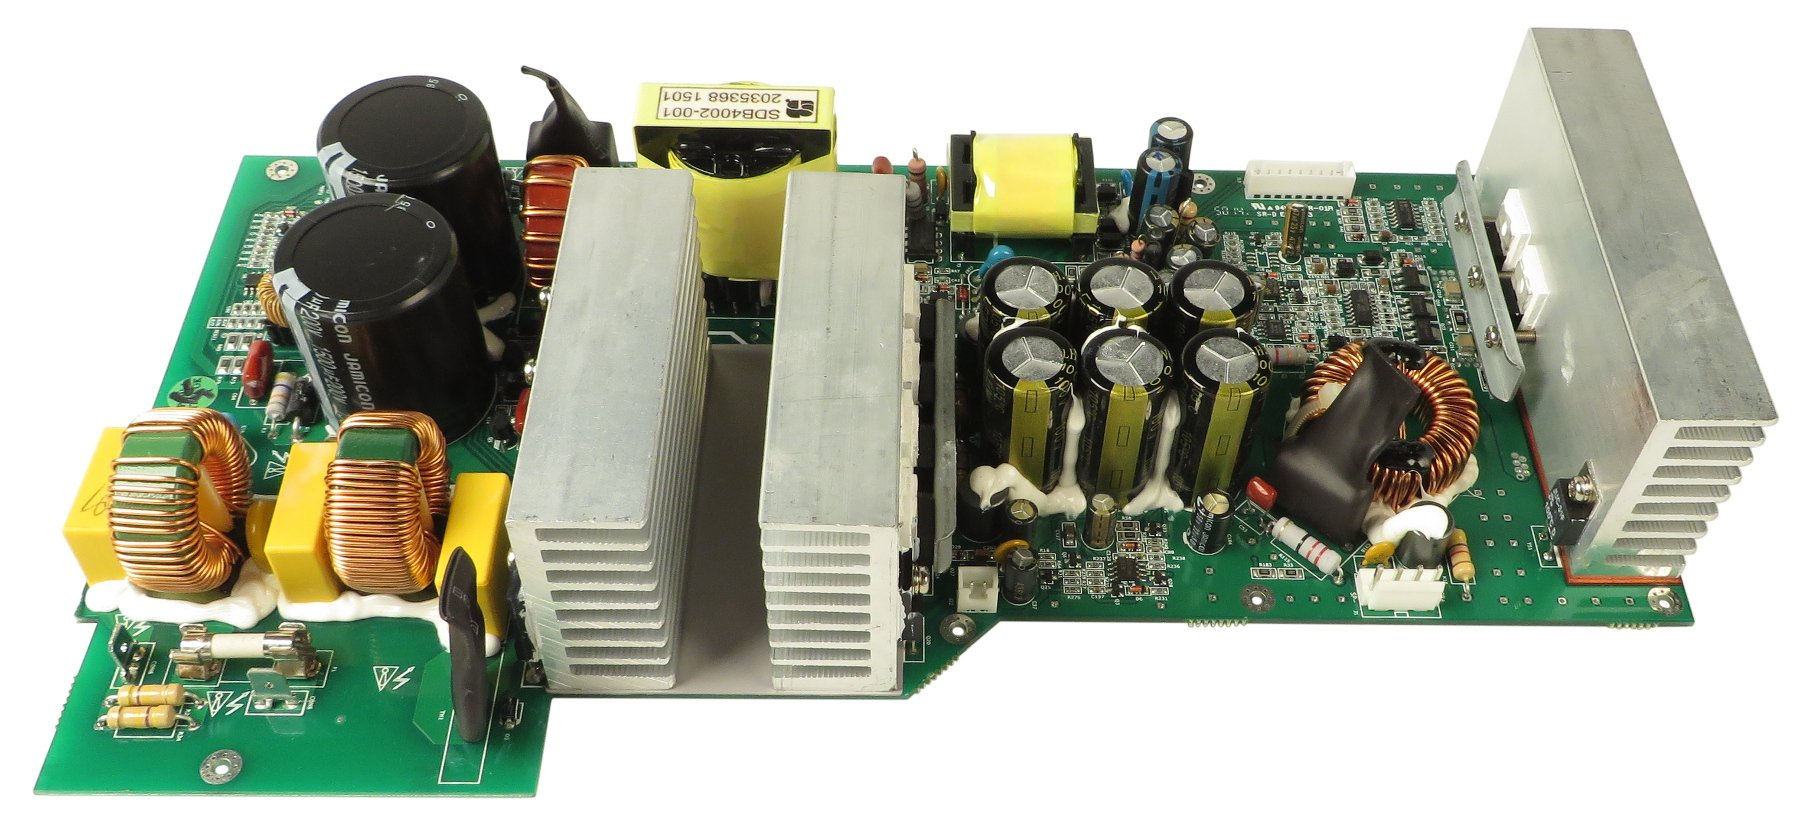 Main Pcb For Pf 500 By Ampeg 2034544 01 Full Compass Systems Repair And Diagnostic Of Electronic Circuit Board Stock Photo